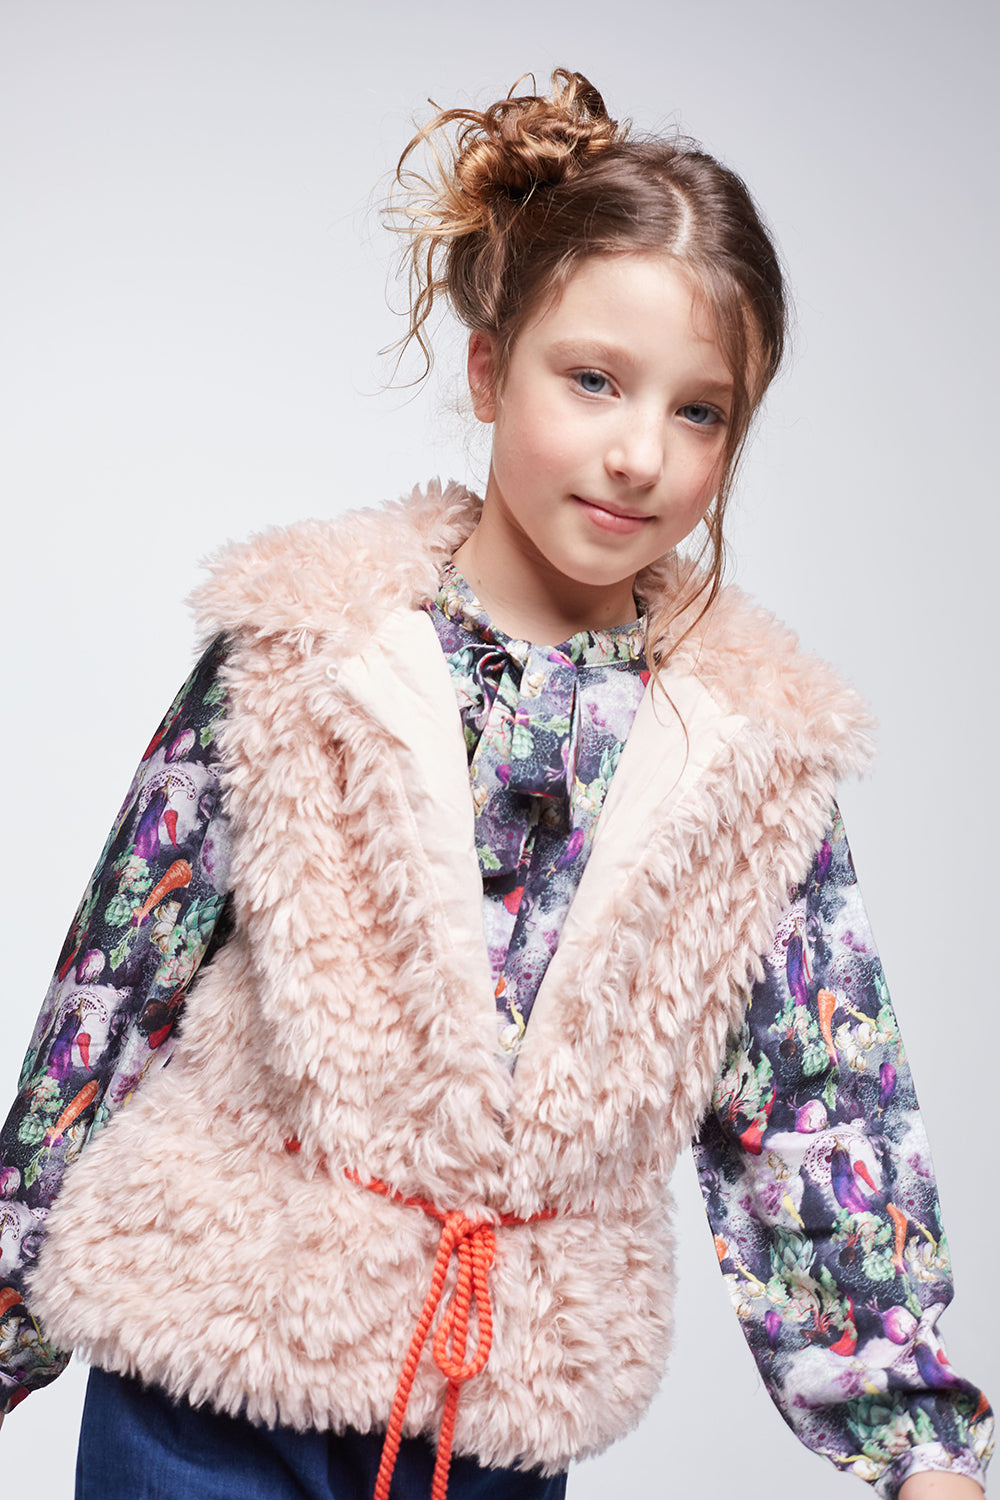 Load image into Gallery viewer, Coco Au Lait BABY PINK FAUX FUR VEST Vest Peach Pearl